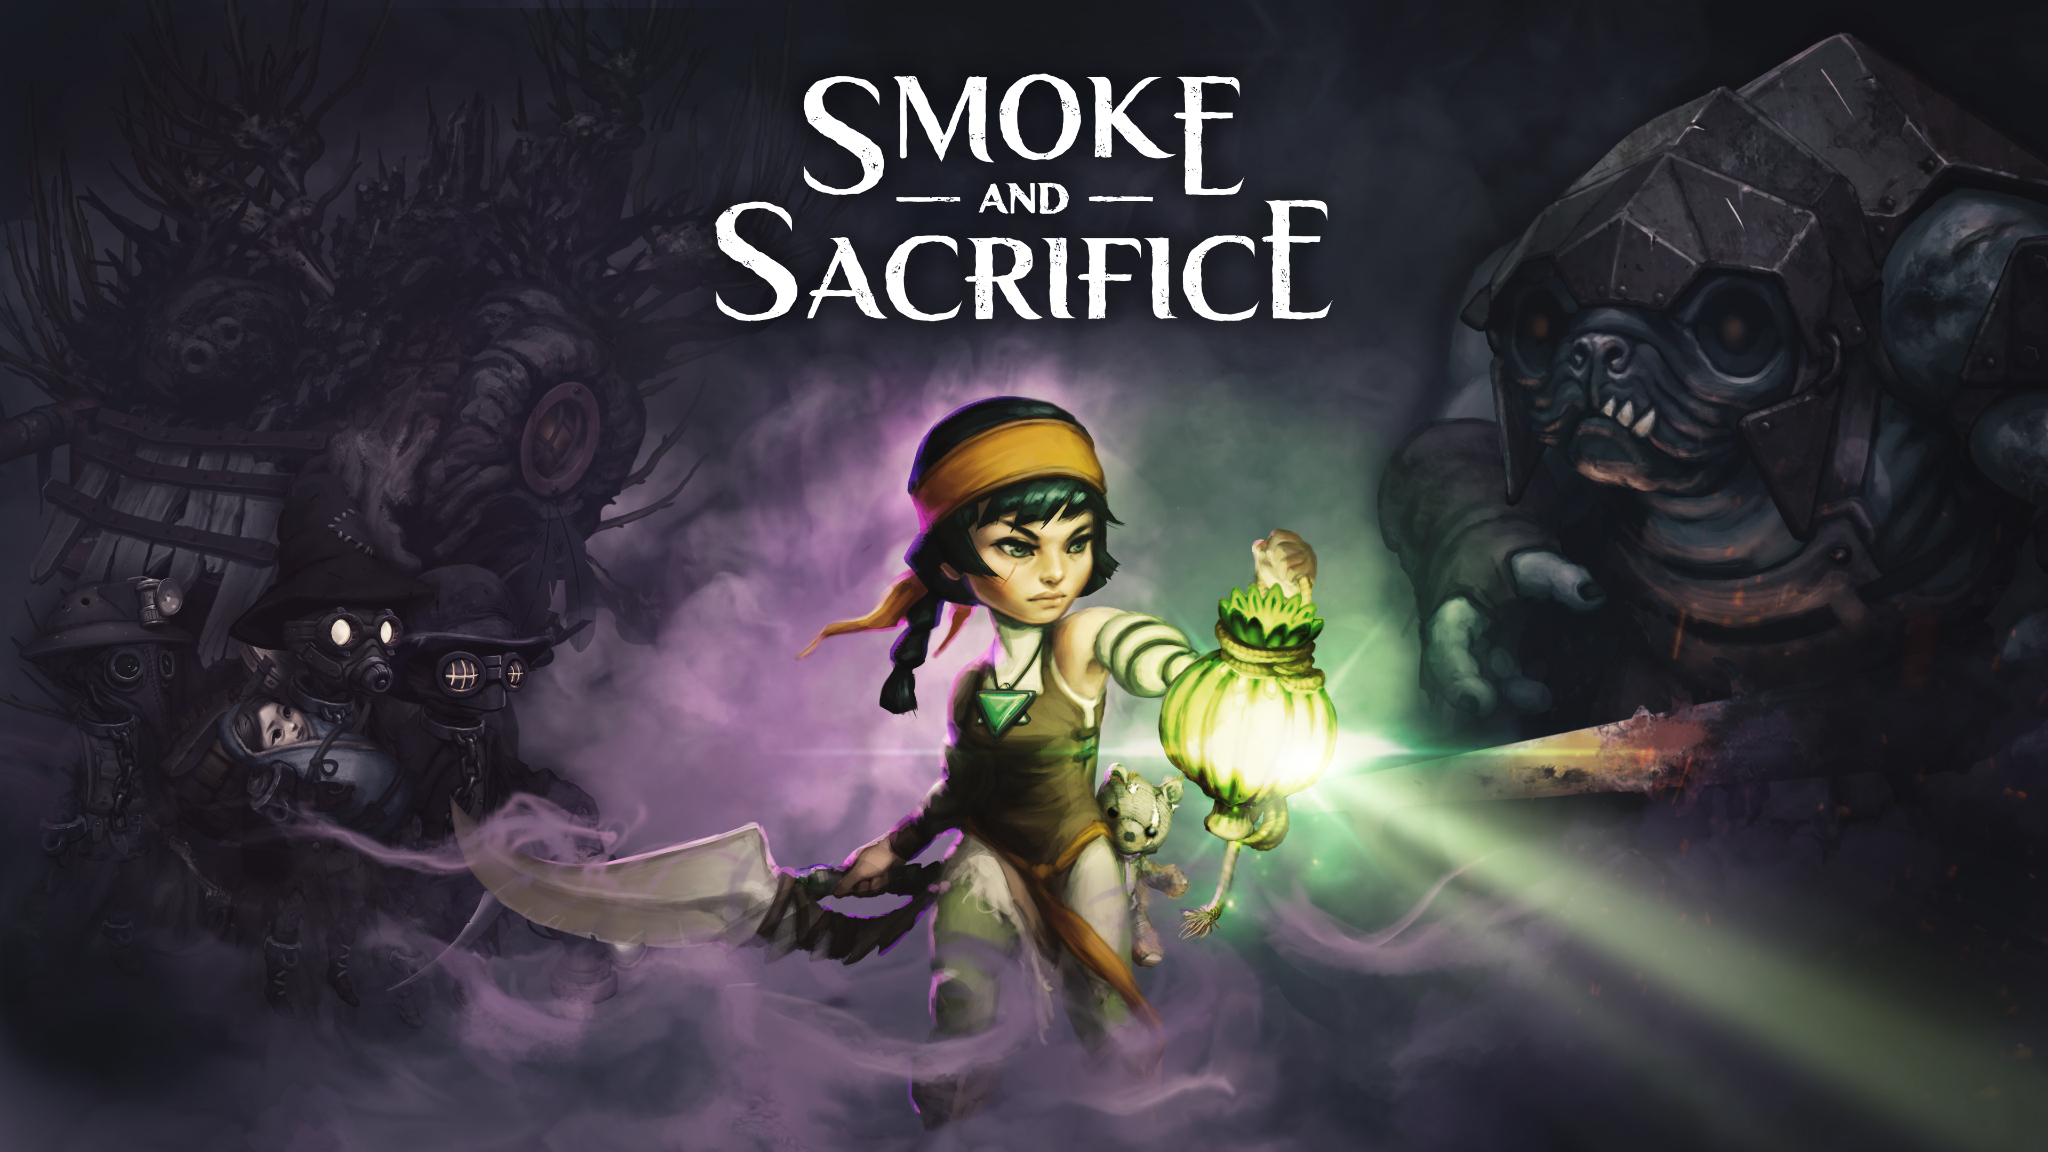 Smoke and Sacrifice - art